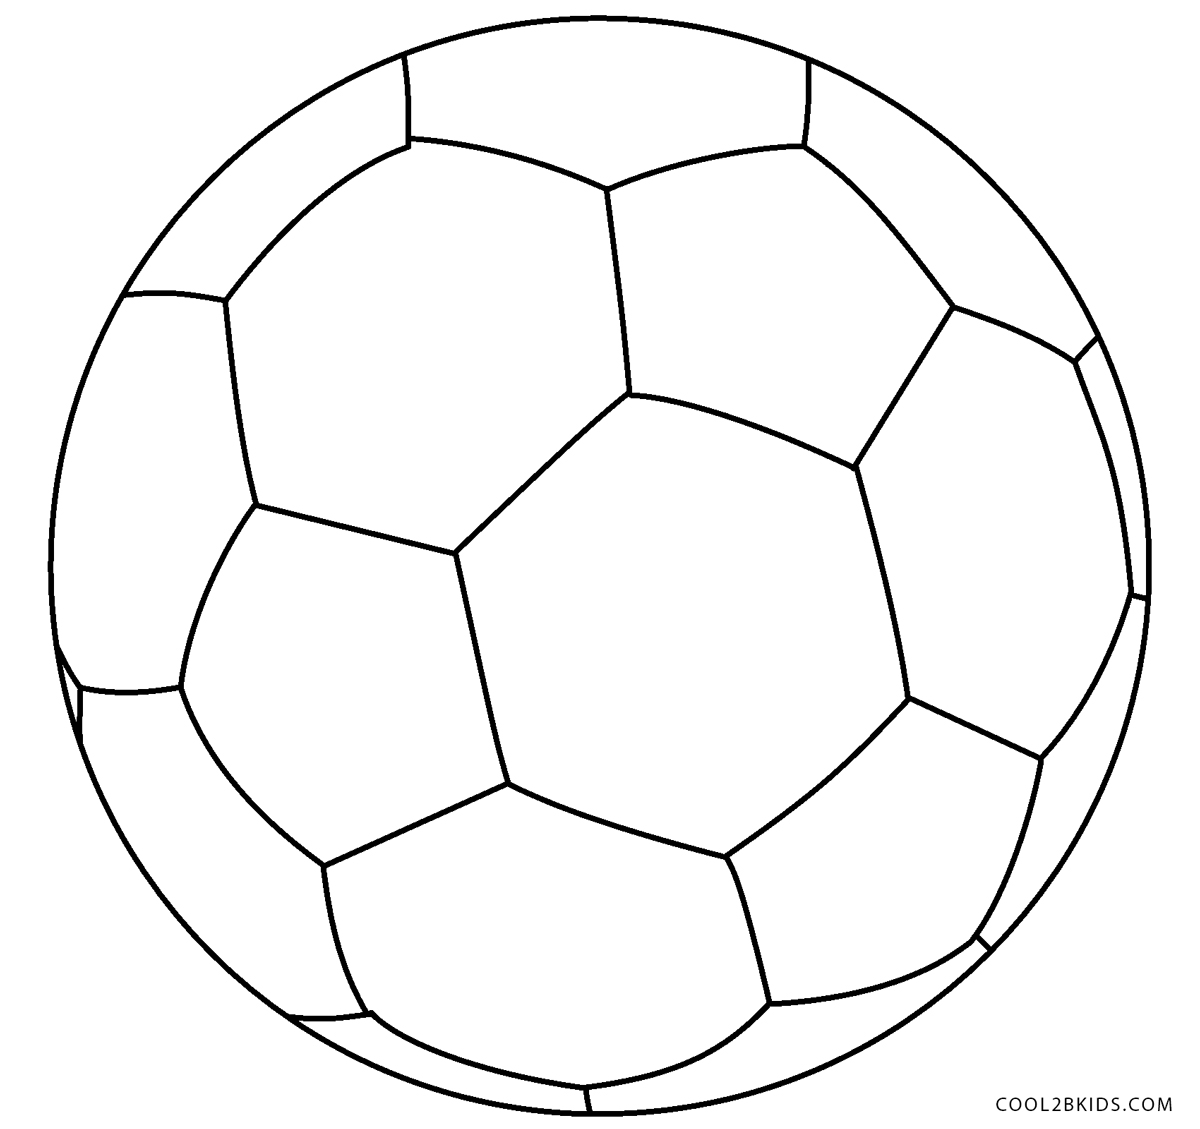 free printable soccer coloring for kids ball kid two christmas clipart sheet crayola coloring pages Soccer Ball Coloring Page